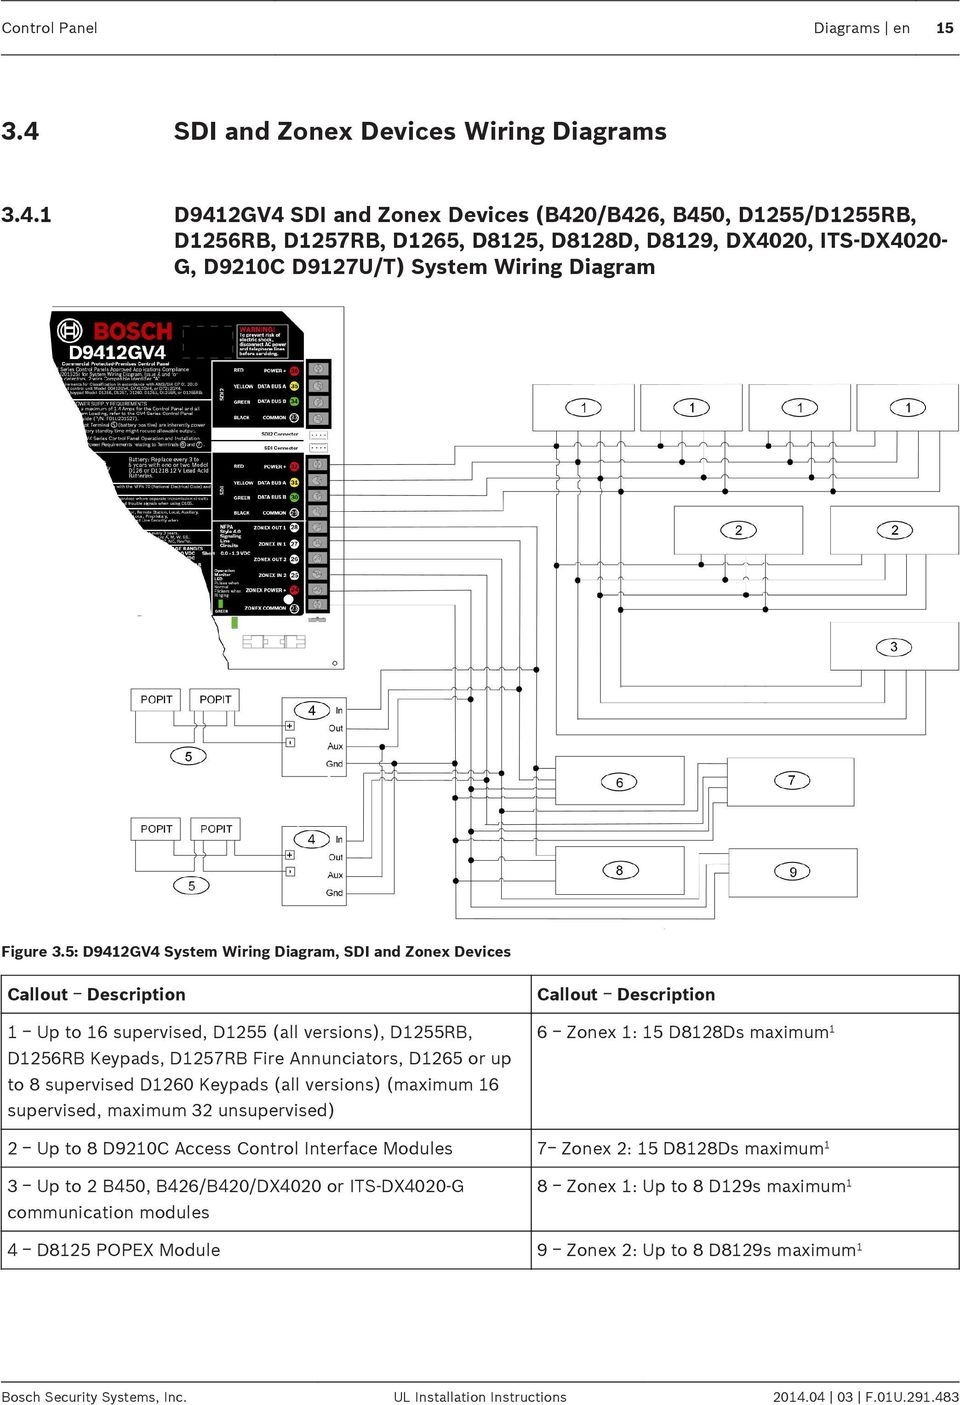 adt lynx quick connect manual